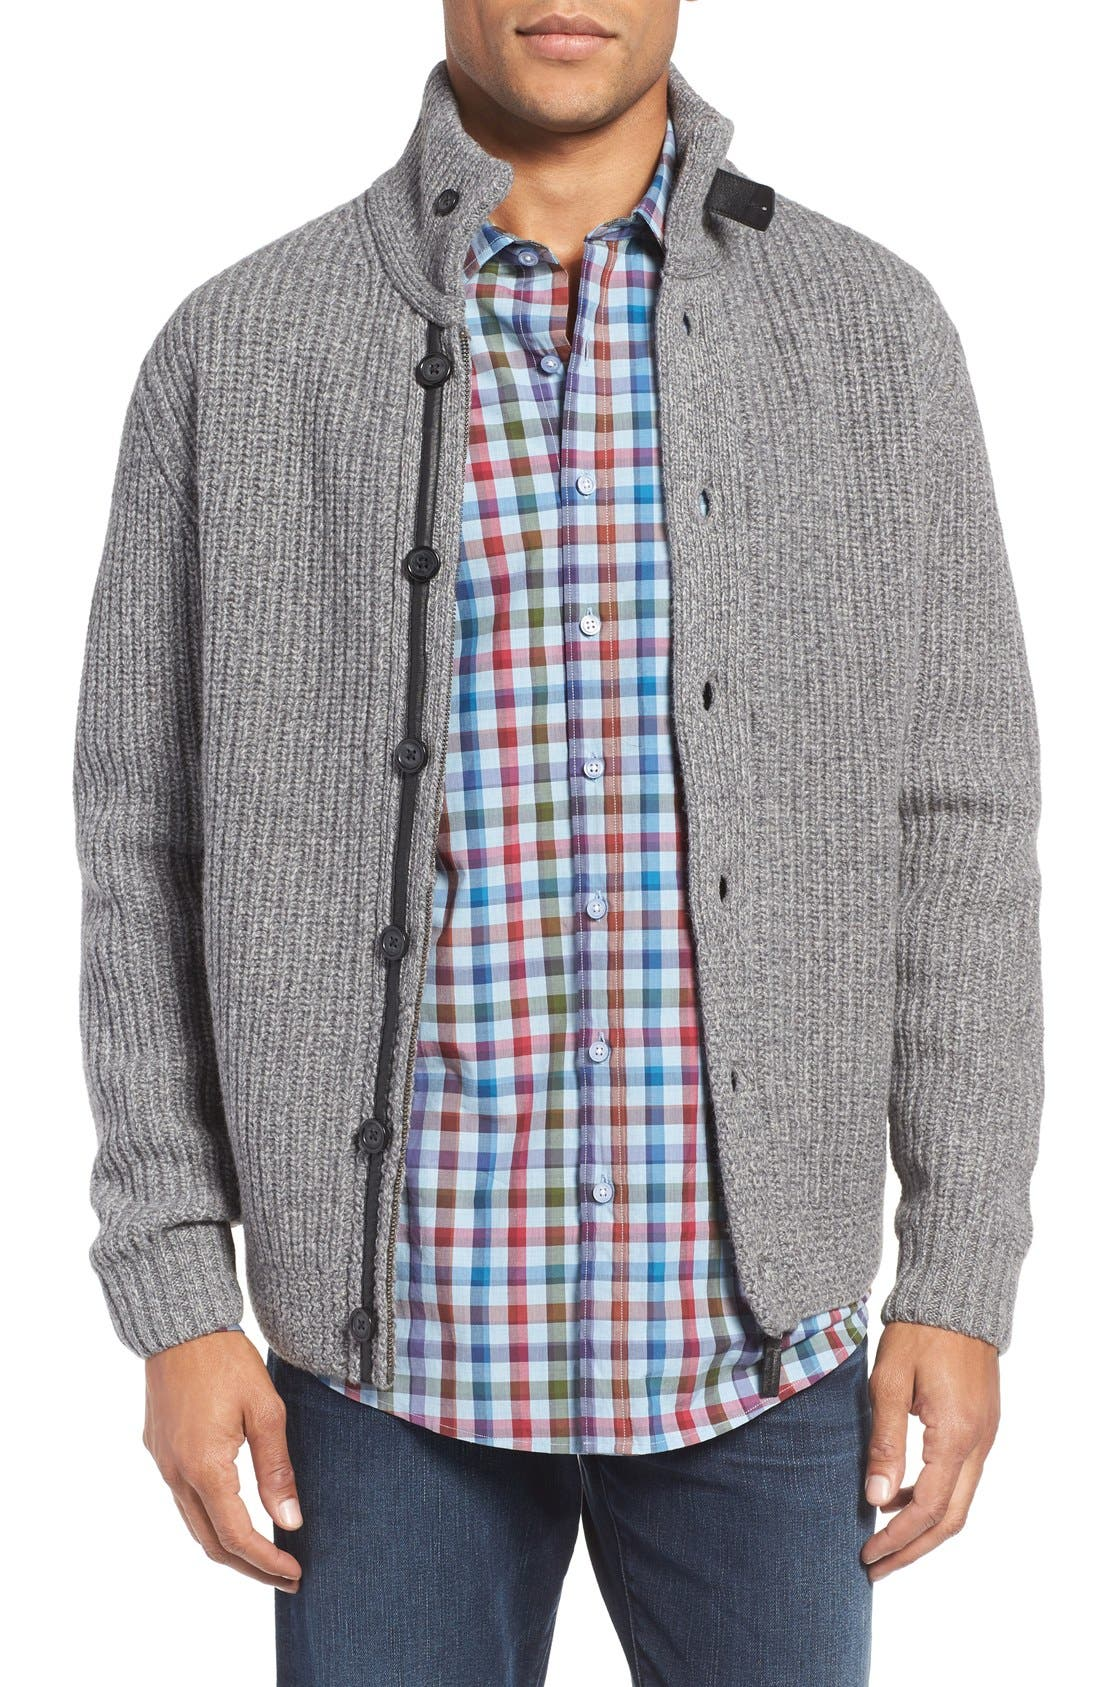 RODD & GUNN 'Eldson' Zip & Button Cardigan